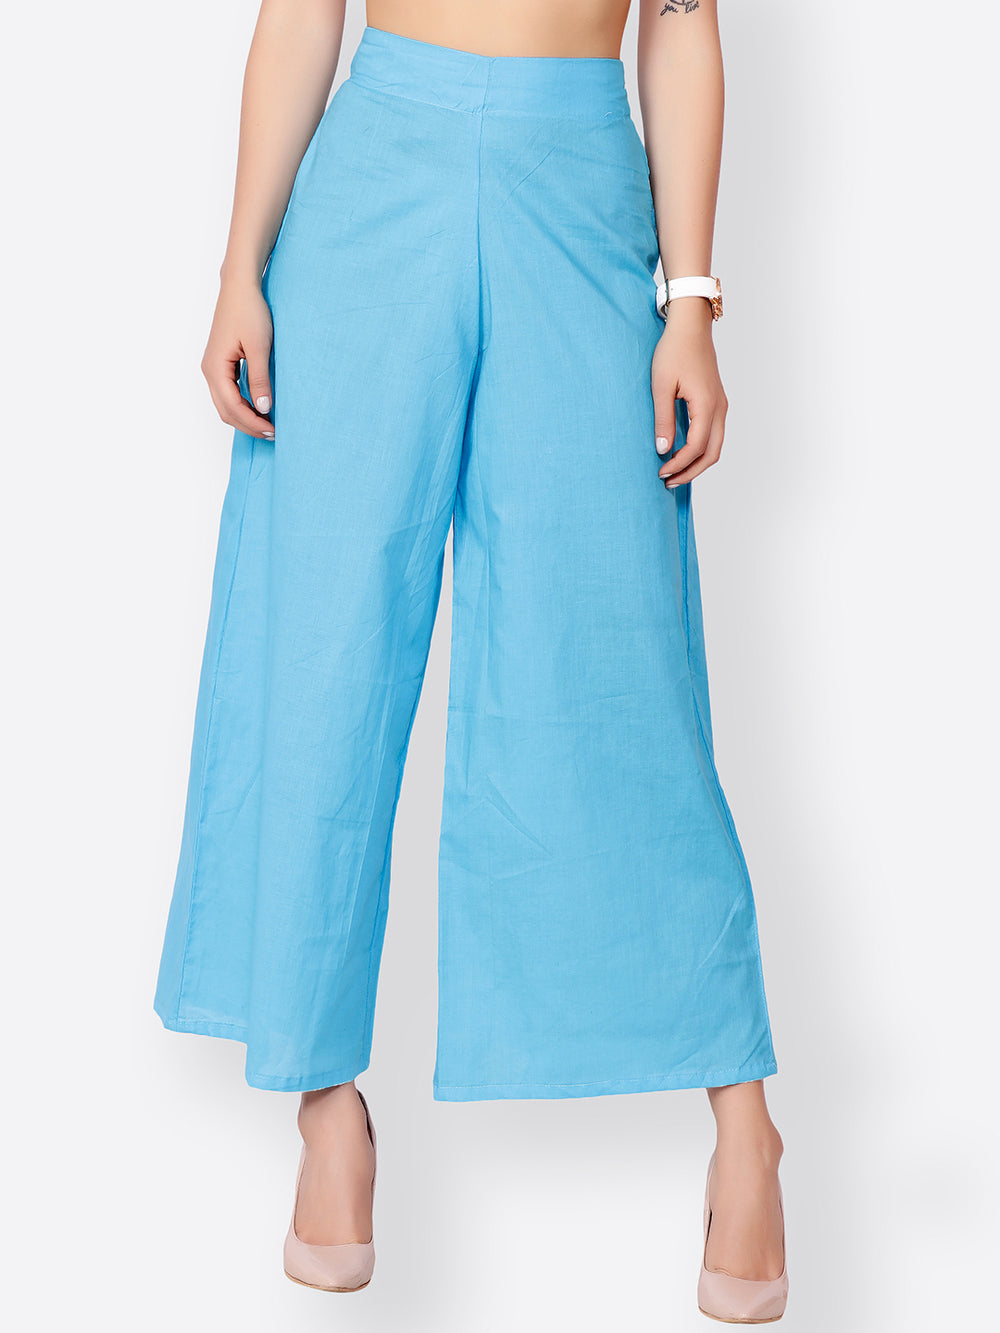 SCORPIUS Women Blue Wide Leg Solid Palazzos